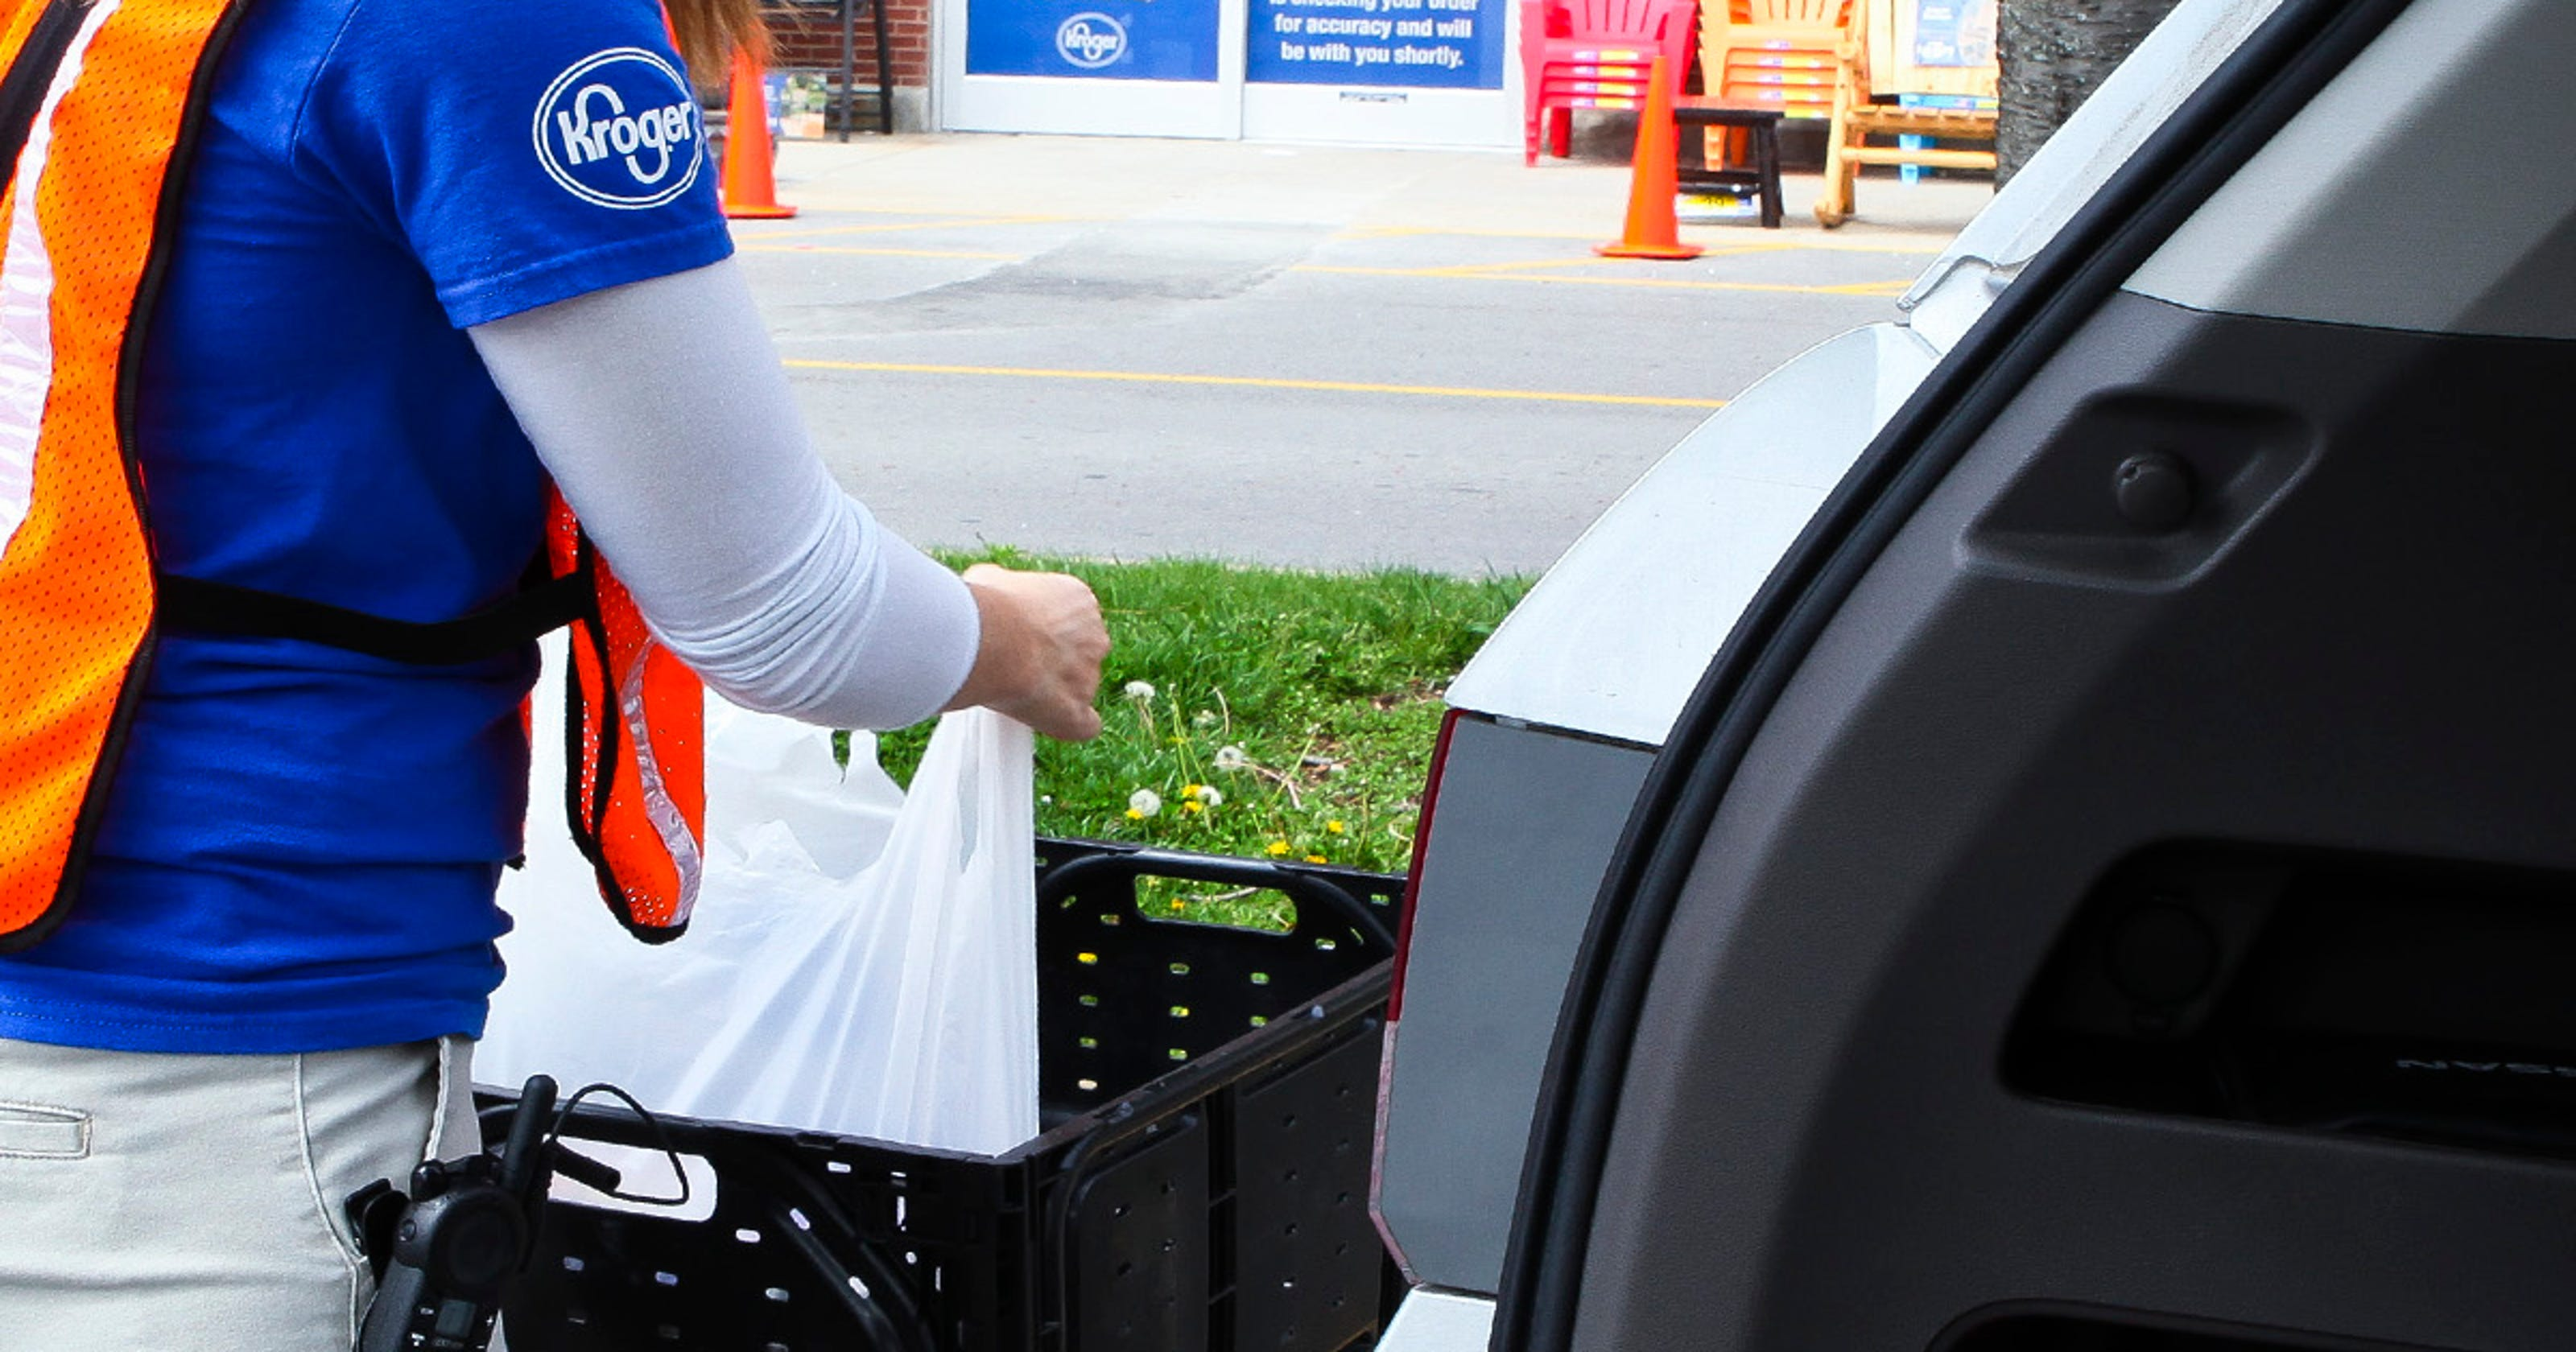 Kroger wants to expand ClickList in Murfreesboro